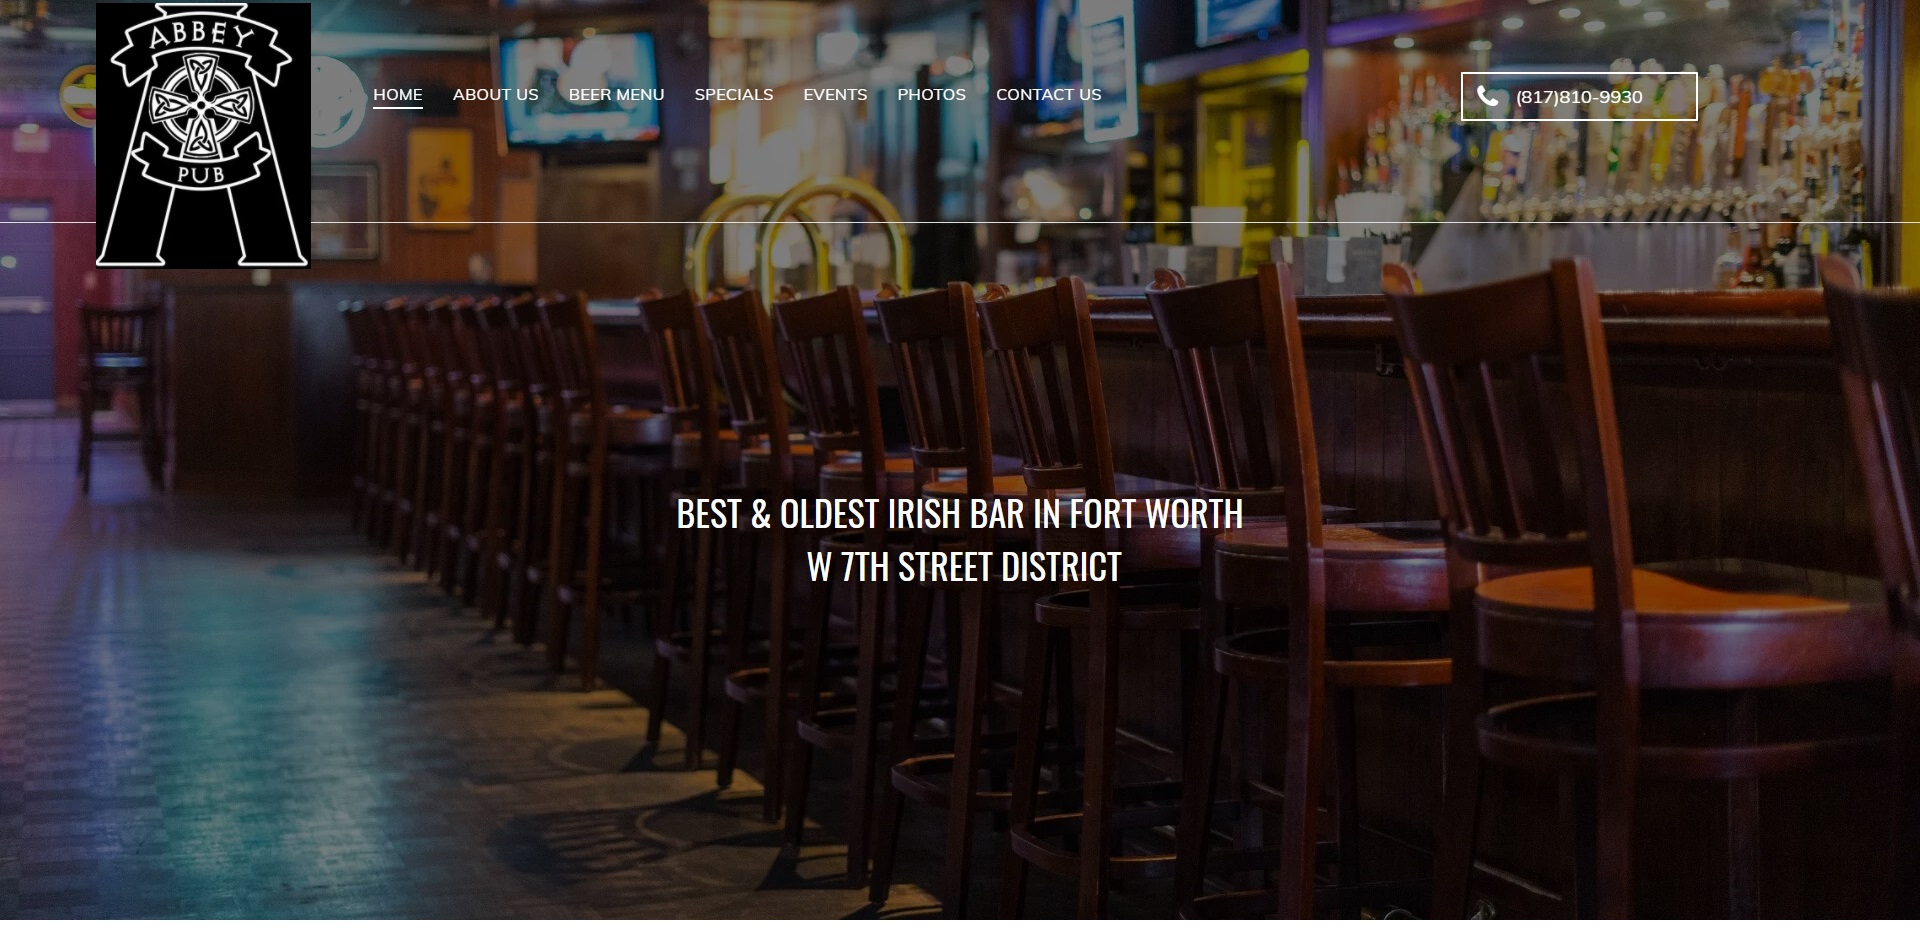 The Best Pubs in Fort Worth, TX